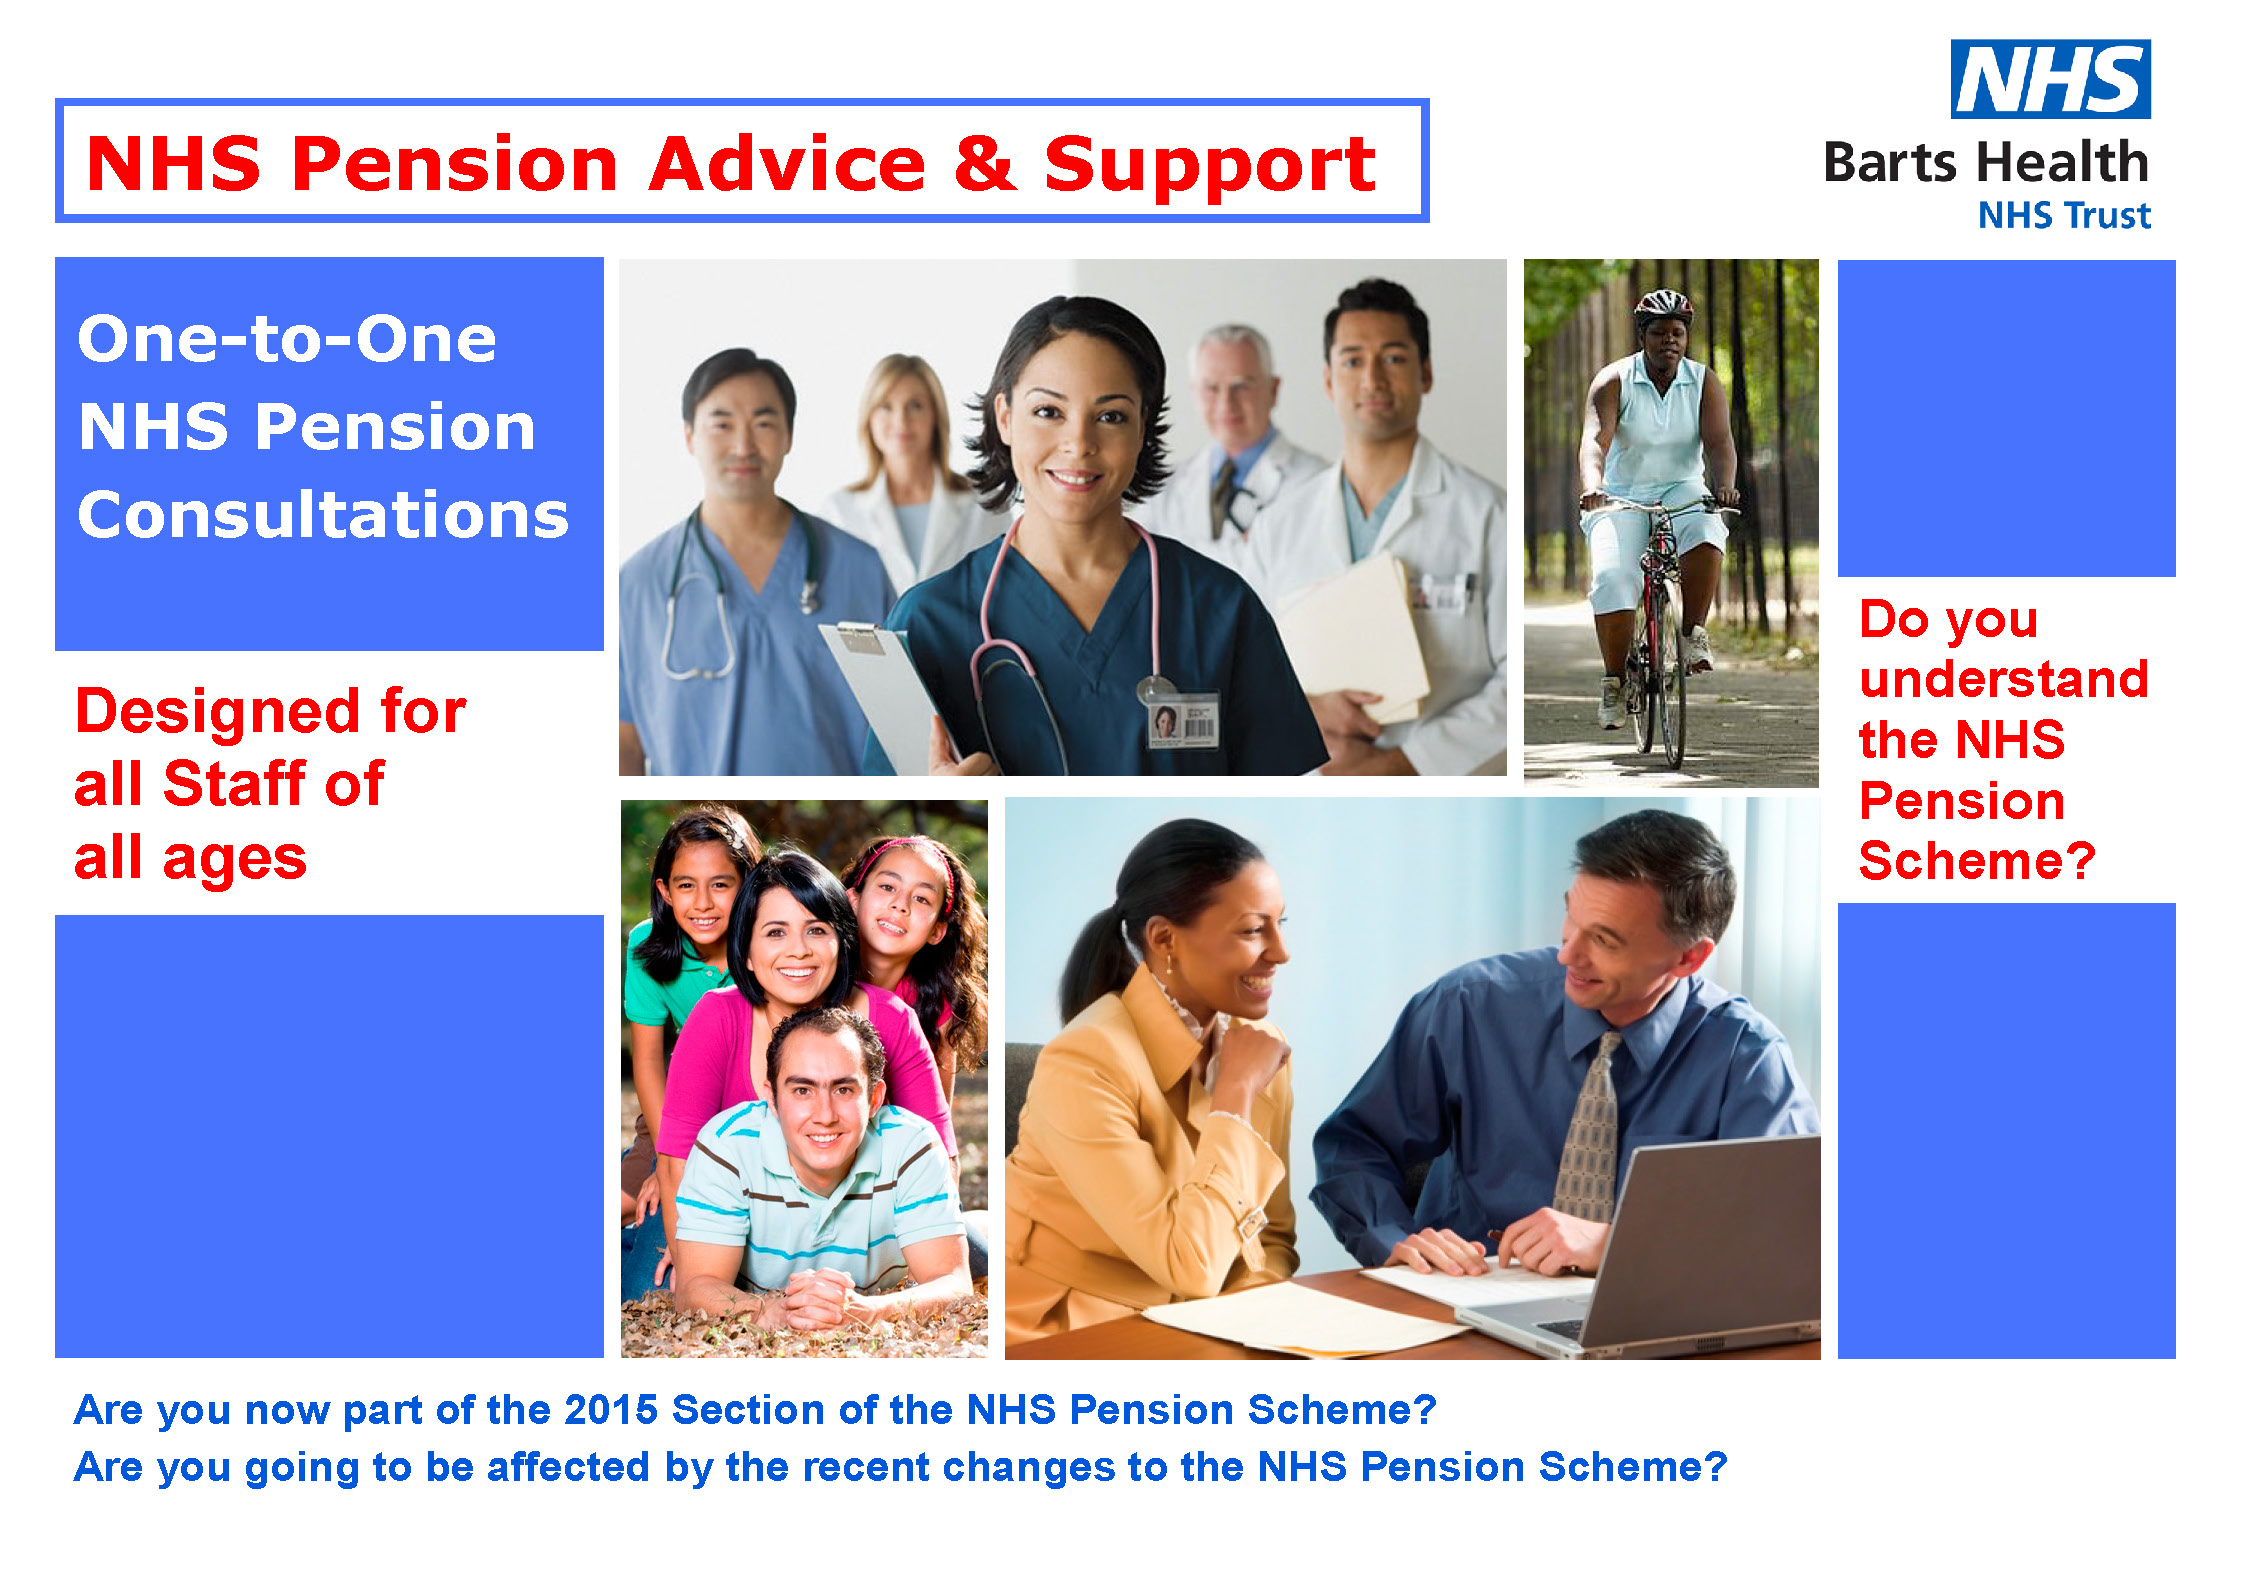 NHS Pension Update - Virtual Seminars